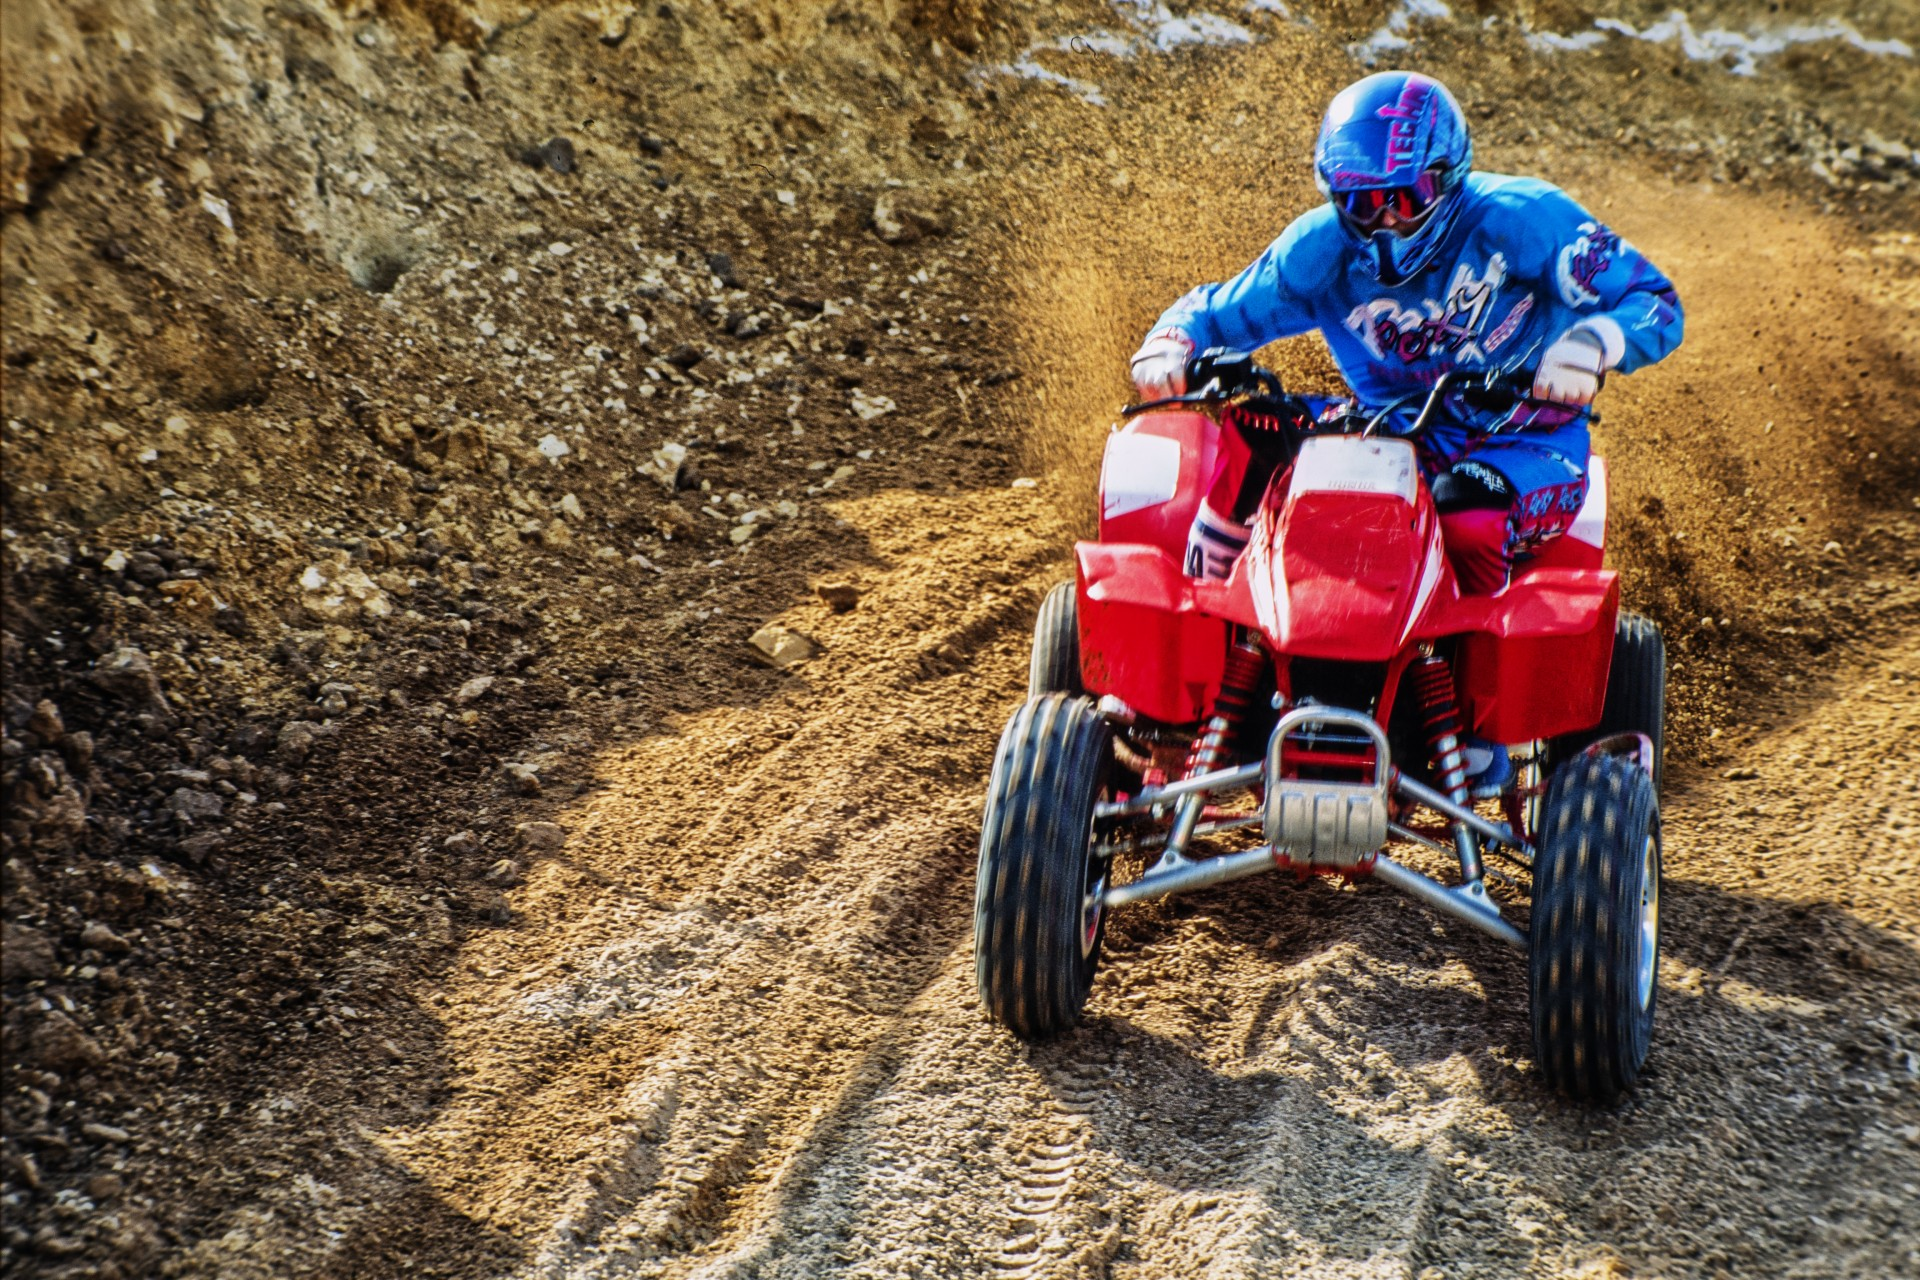 I also raced some years on a 2 wheels drive racing quad, one of the most exciting motorized engine I tried